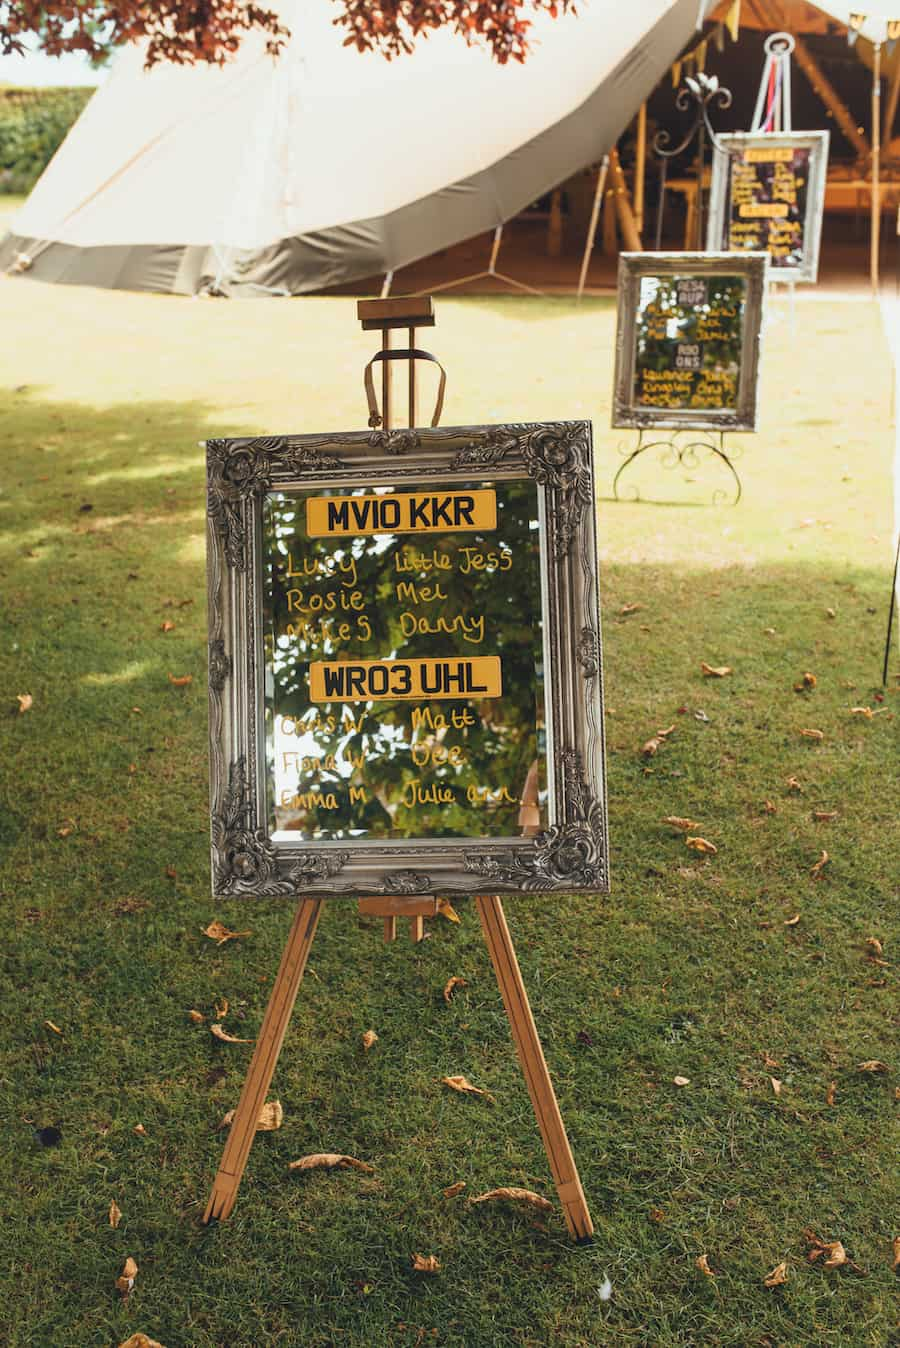 Number plate inspired seating plan - Sami Tipi Wedding Hire captured by Becky Ryan